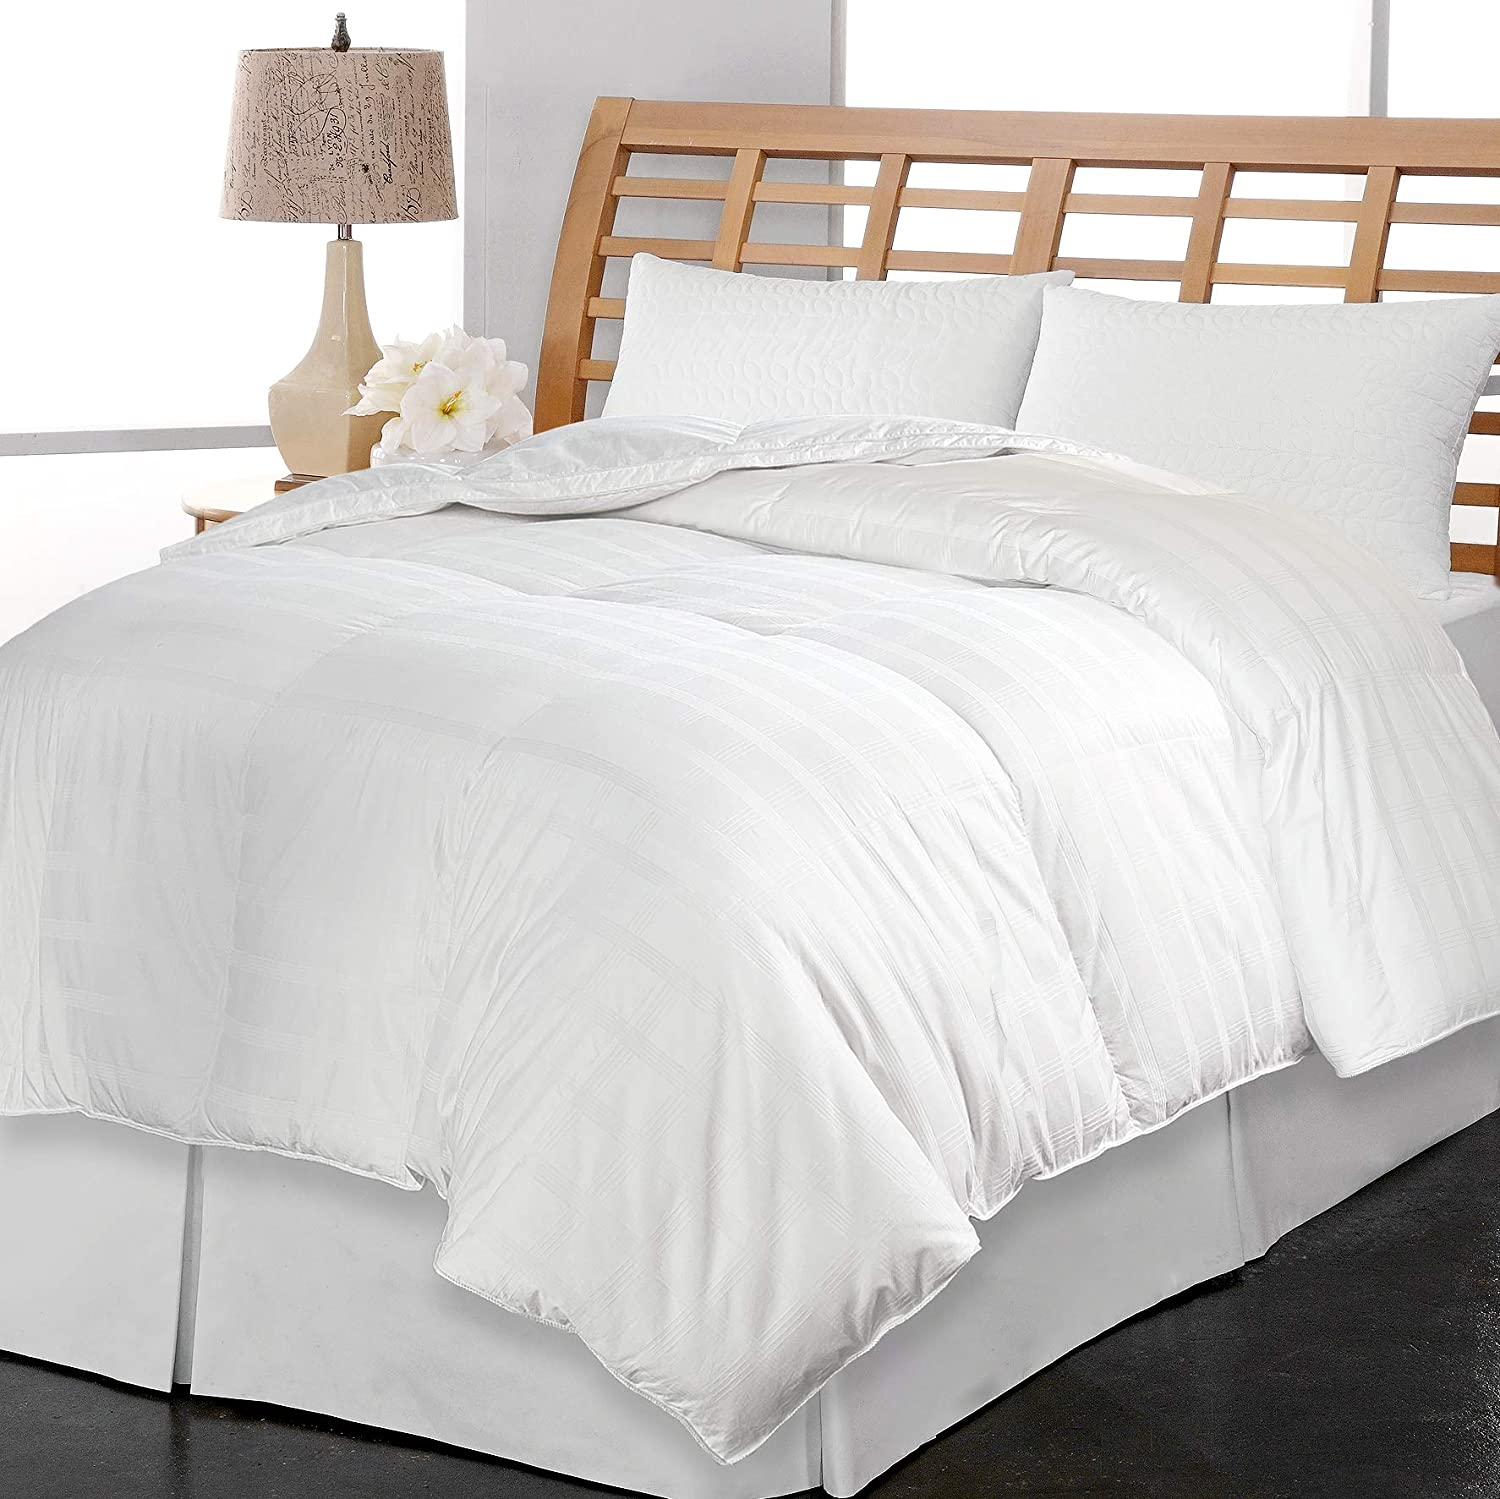 Kathy Ireland White 600 Thread Count Windowpane Goose Down Comforter, Full-Queen